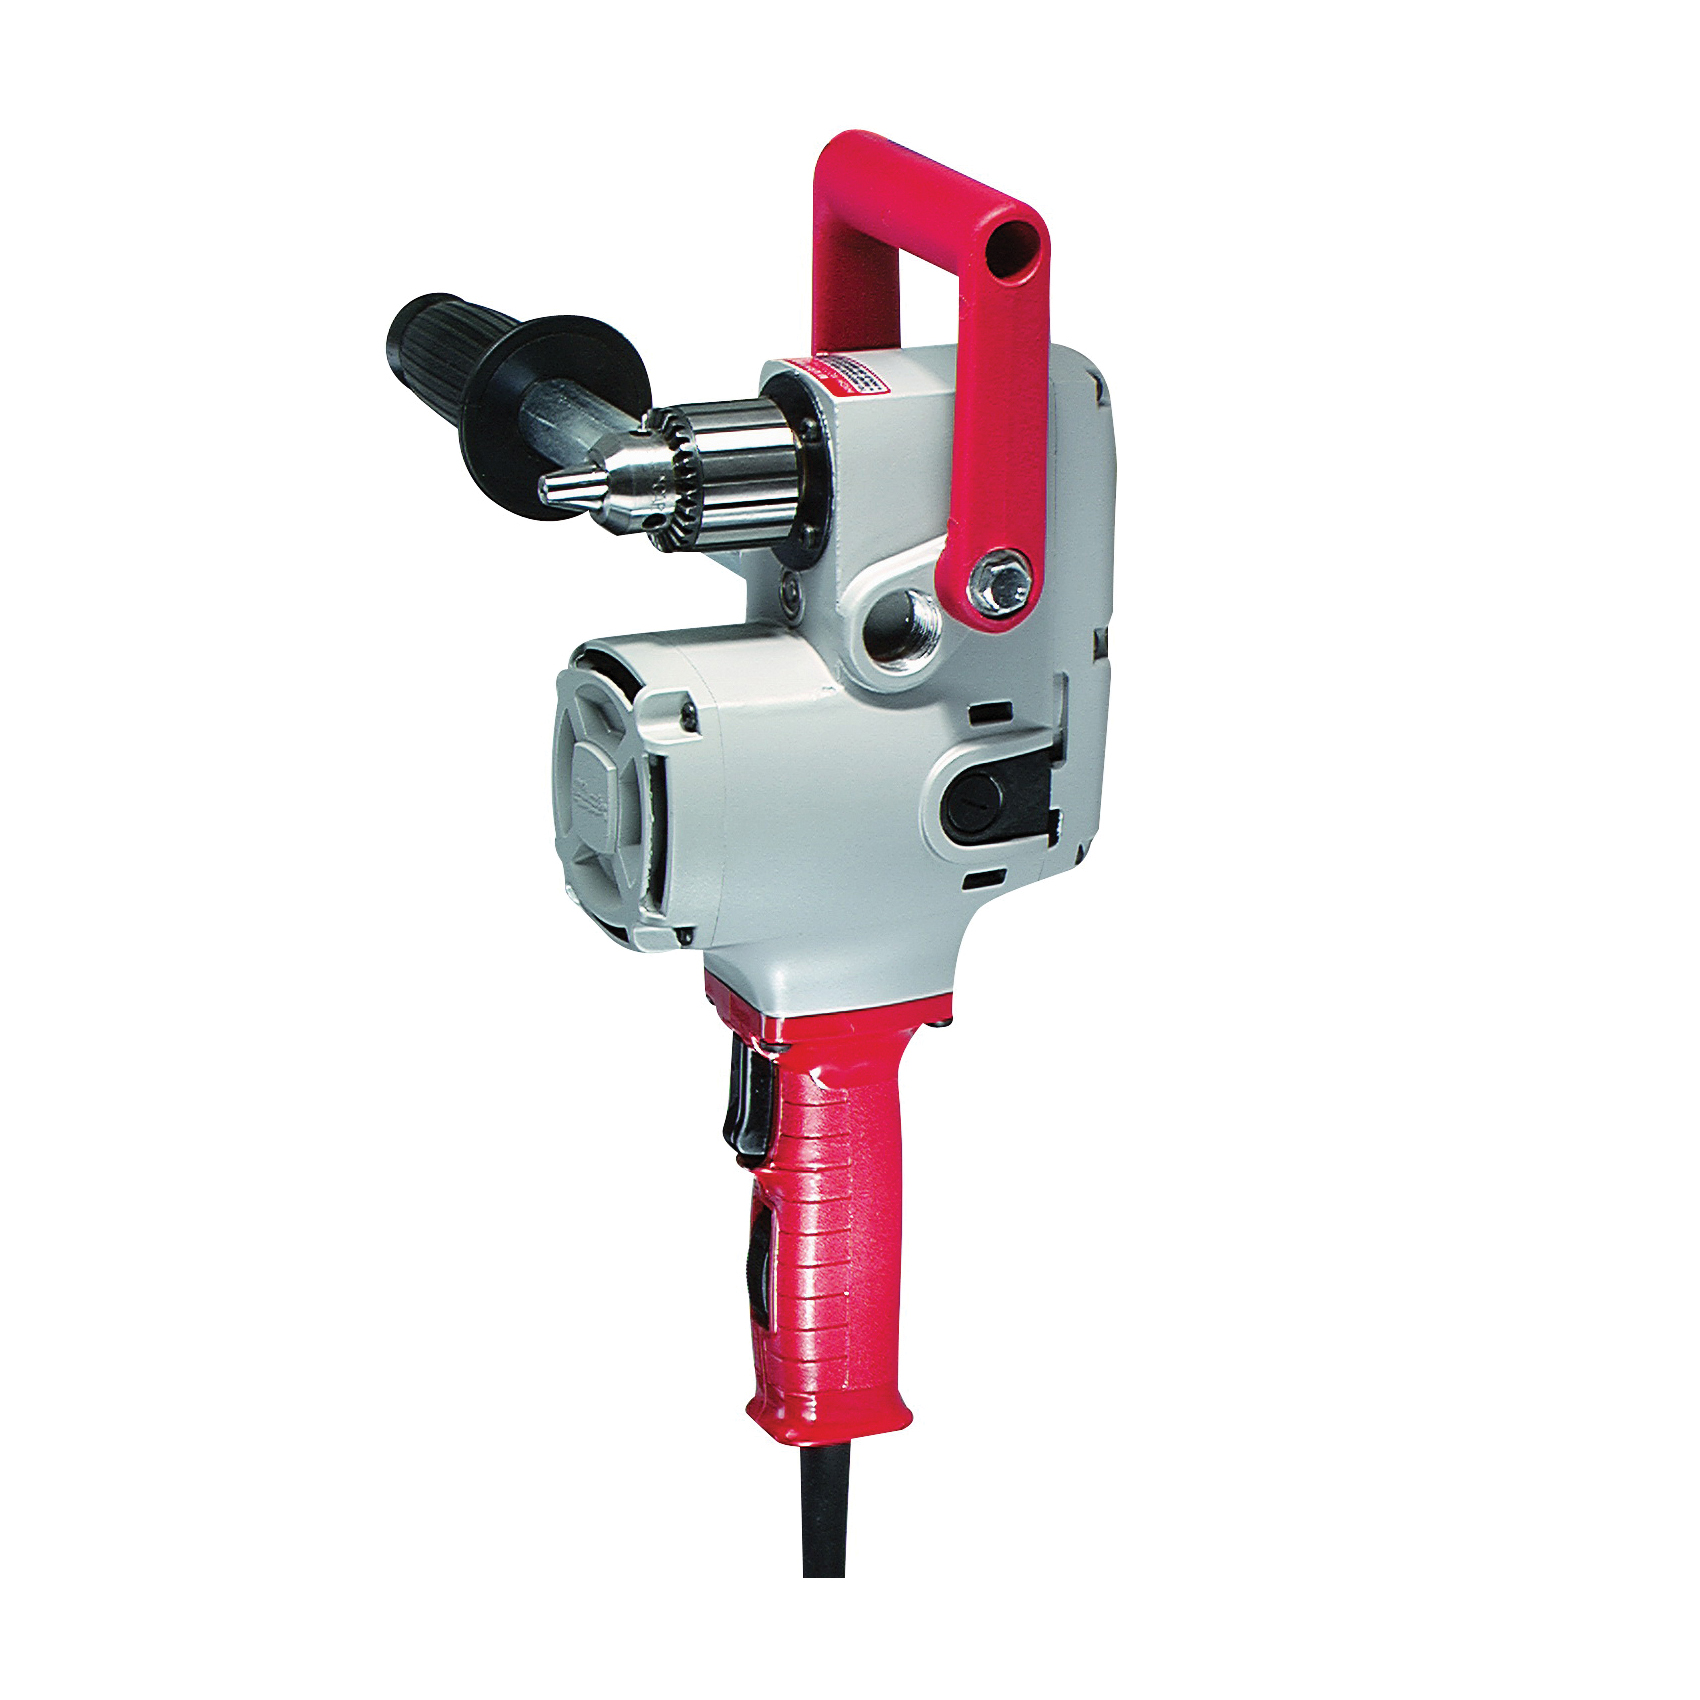 Picture of Milwaukee 1675-6 Electric Drill, 120 VAC, 1/2 in Twist Bit, 4-5/8 in Self-Feed Bit, 1-1/2 in Auger Bit Drilling